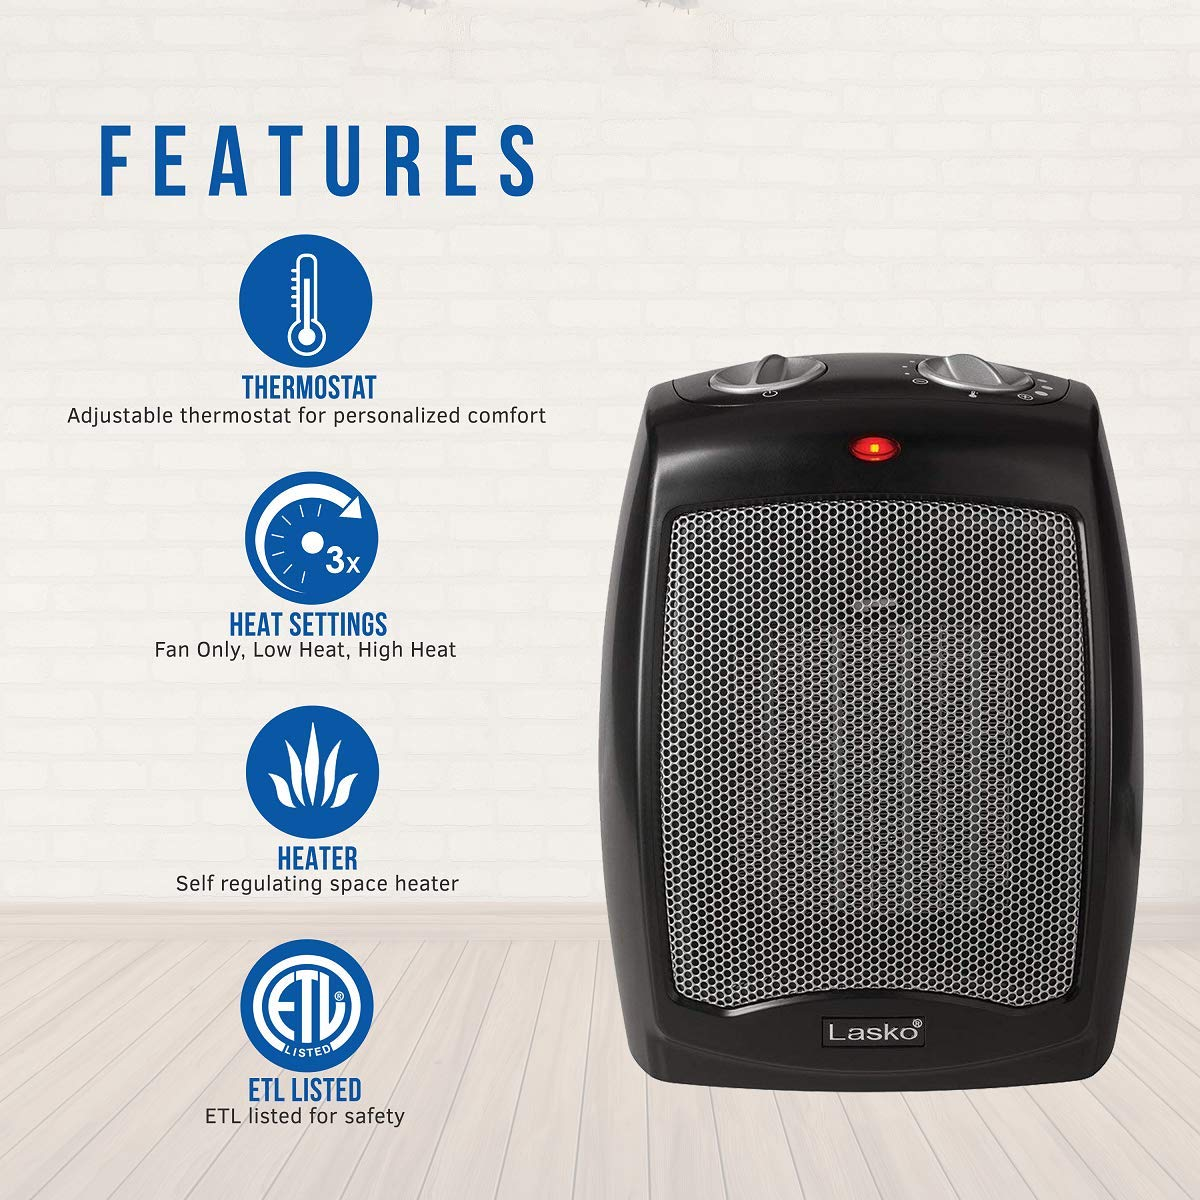 Lasko Ceramic Portable Space Heater